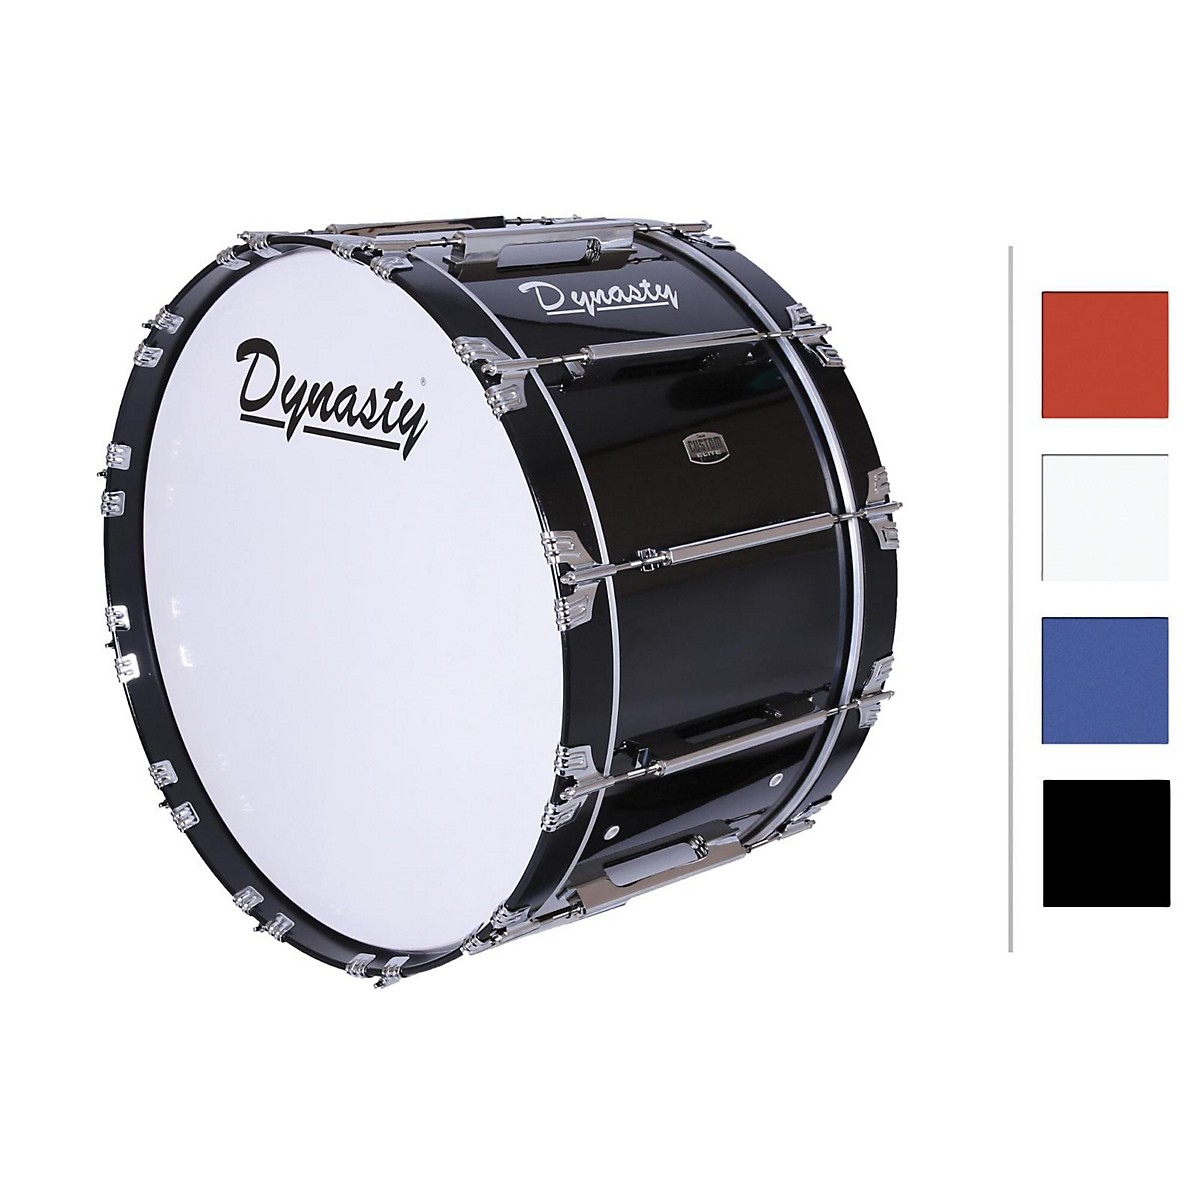 Dynasty Marching Bass Drum 18